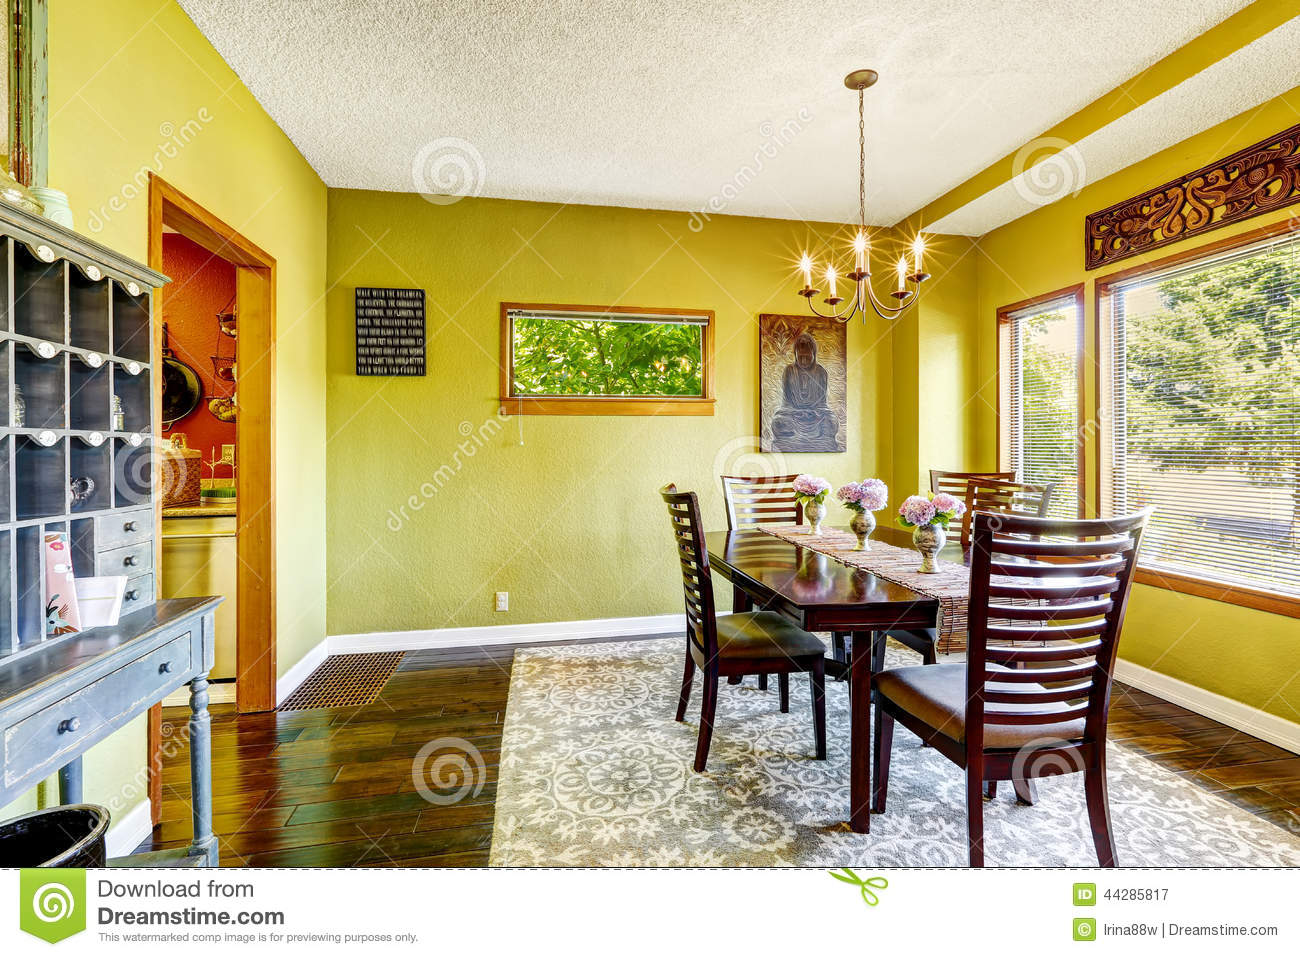 Salle manger jaune lumineuse image stock image du for Salle a manger jaune moutarde